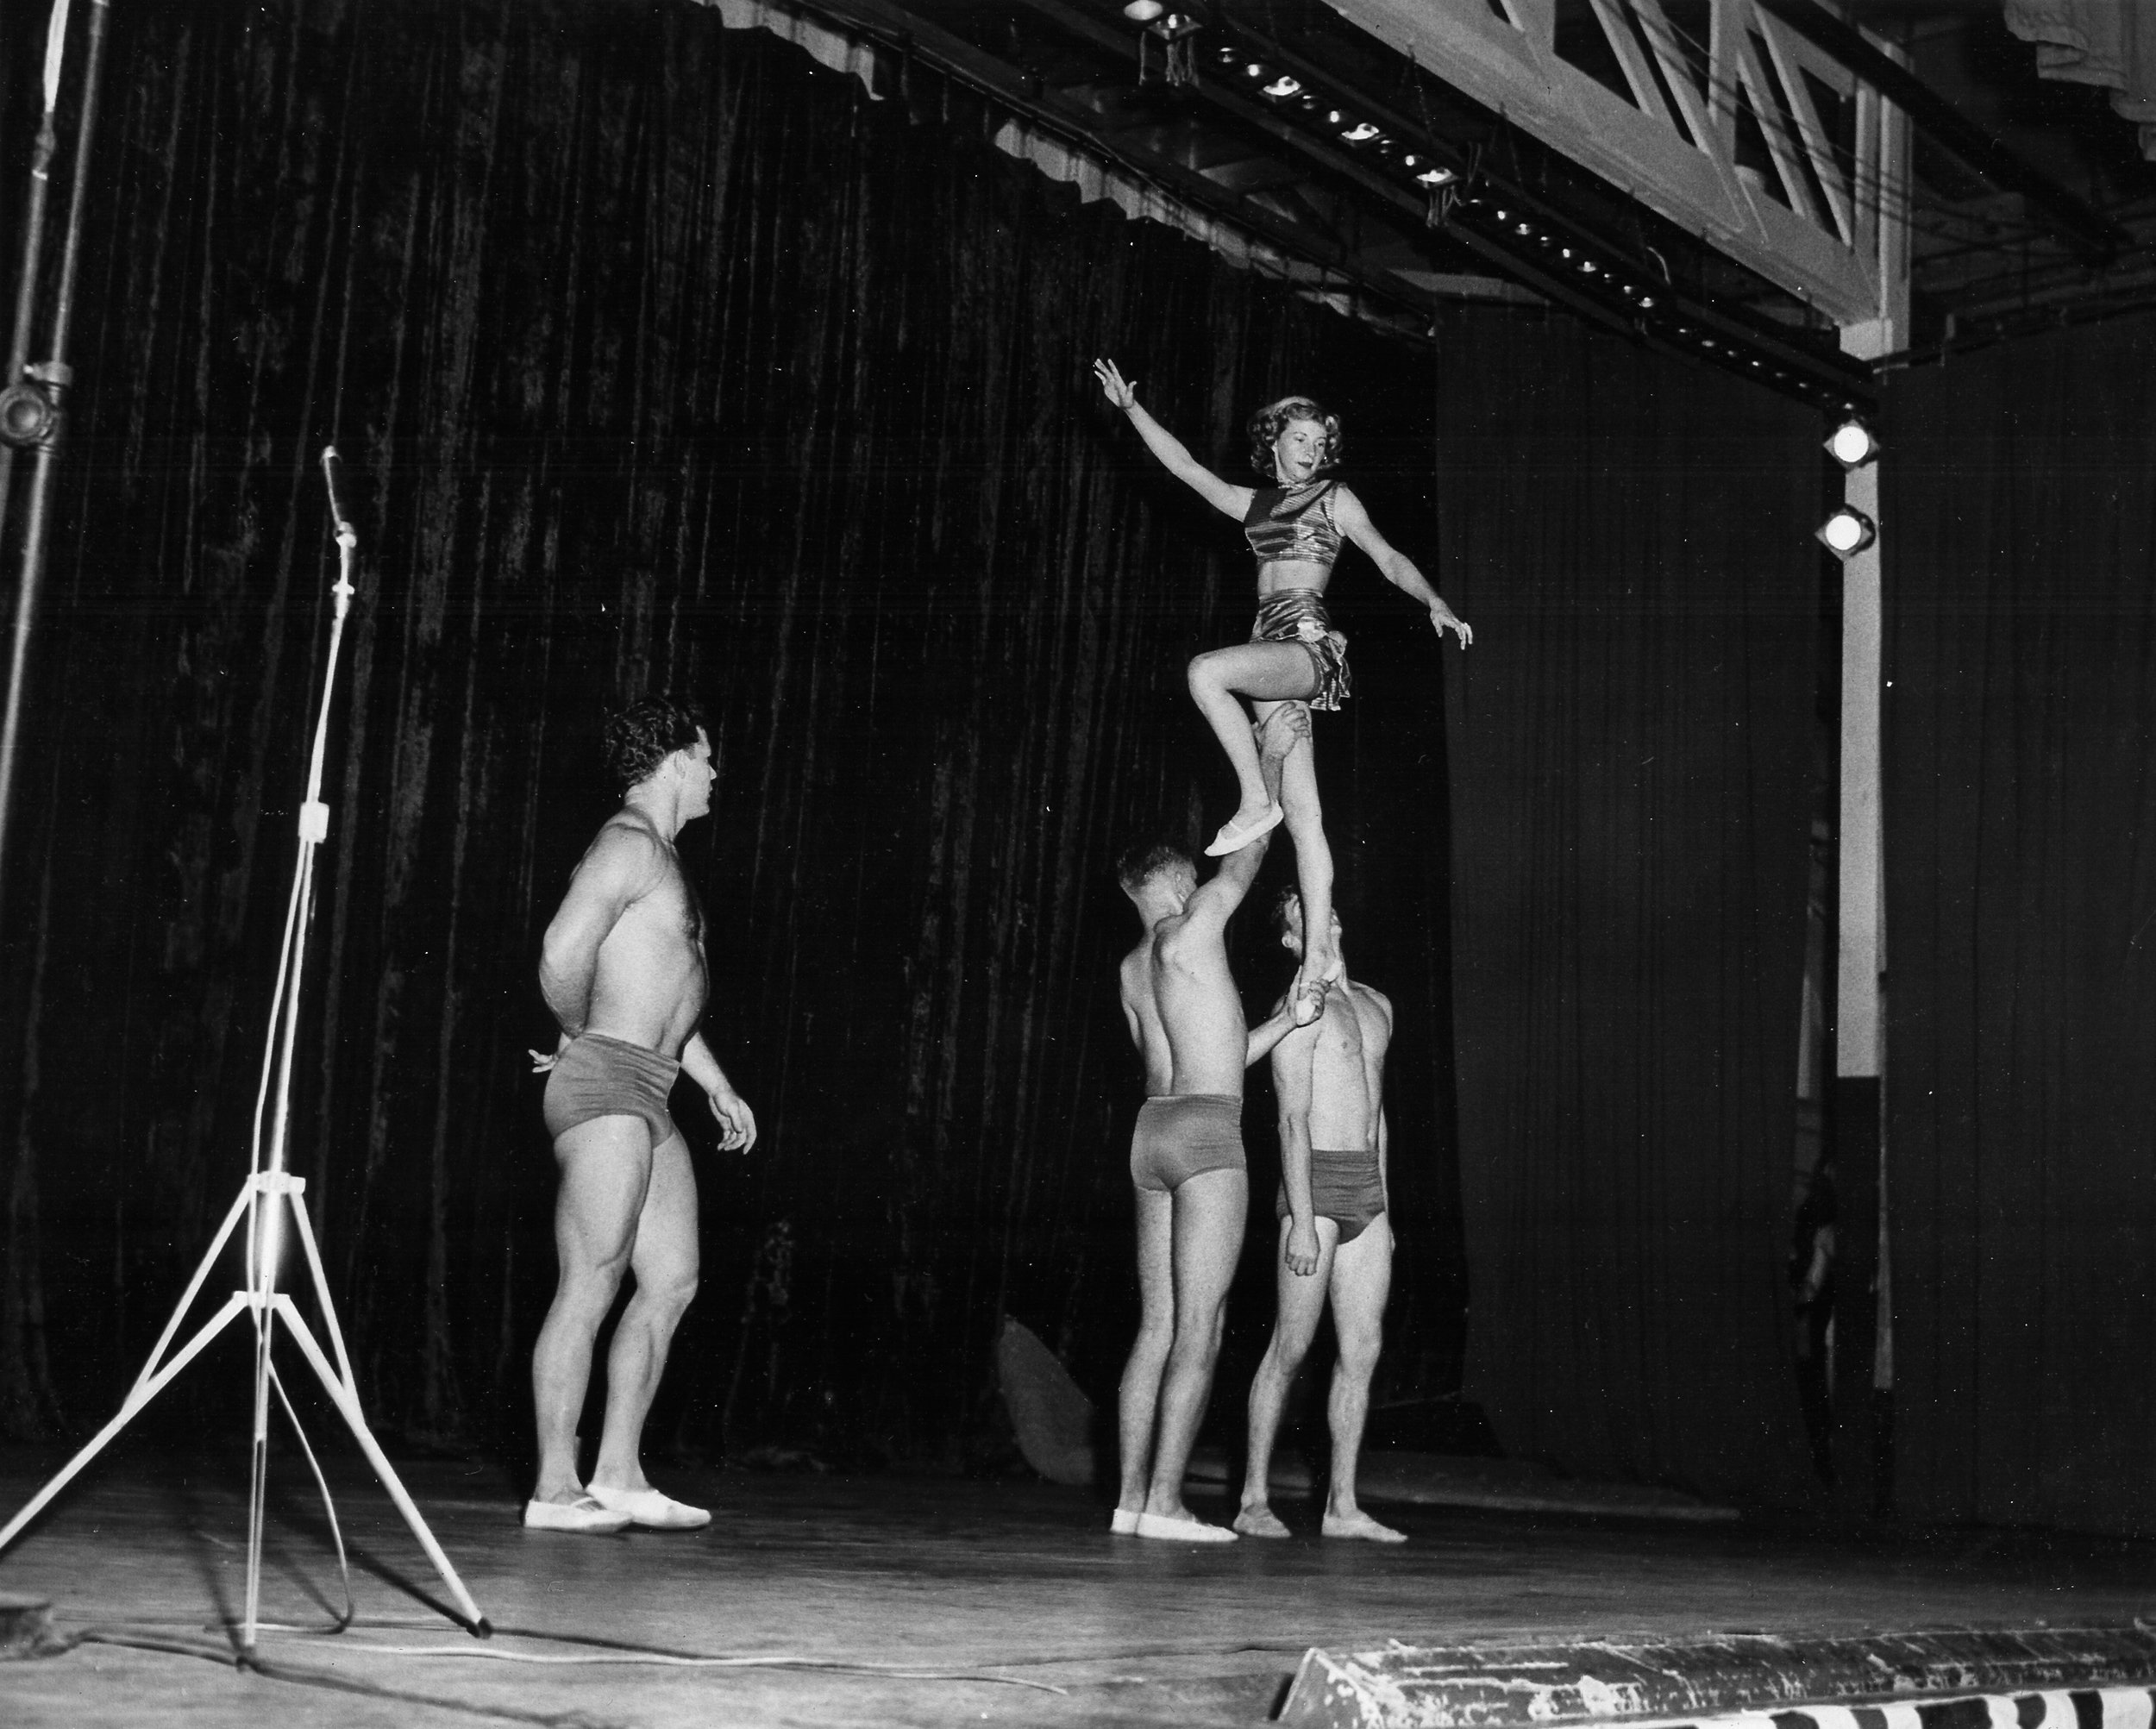 1953 Carolyn Cheek held high by Paul Simmers and George Terrell as Chet Spittle prepares for catch